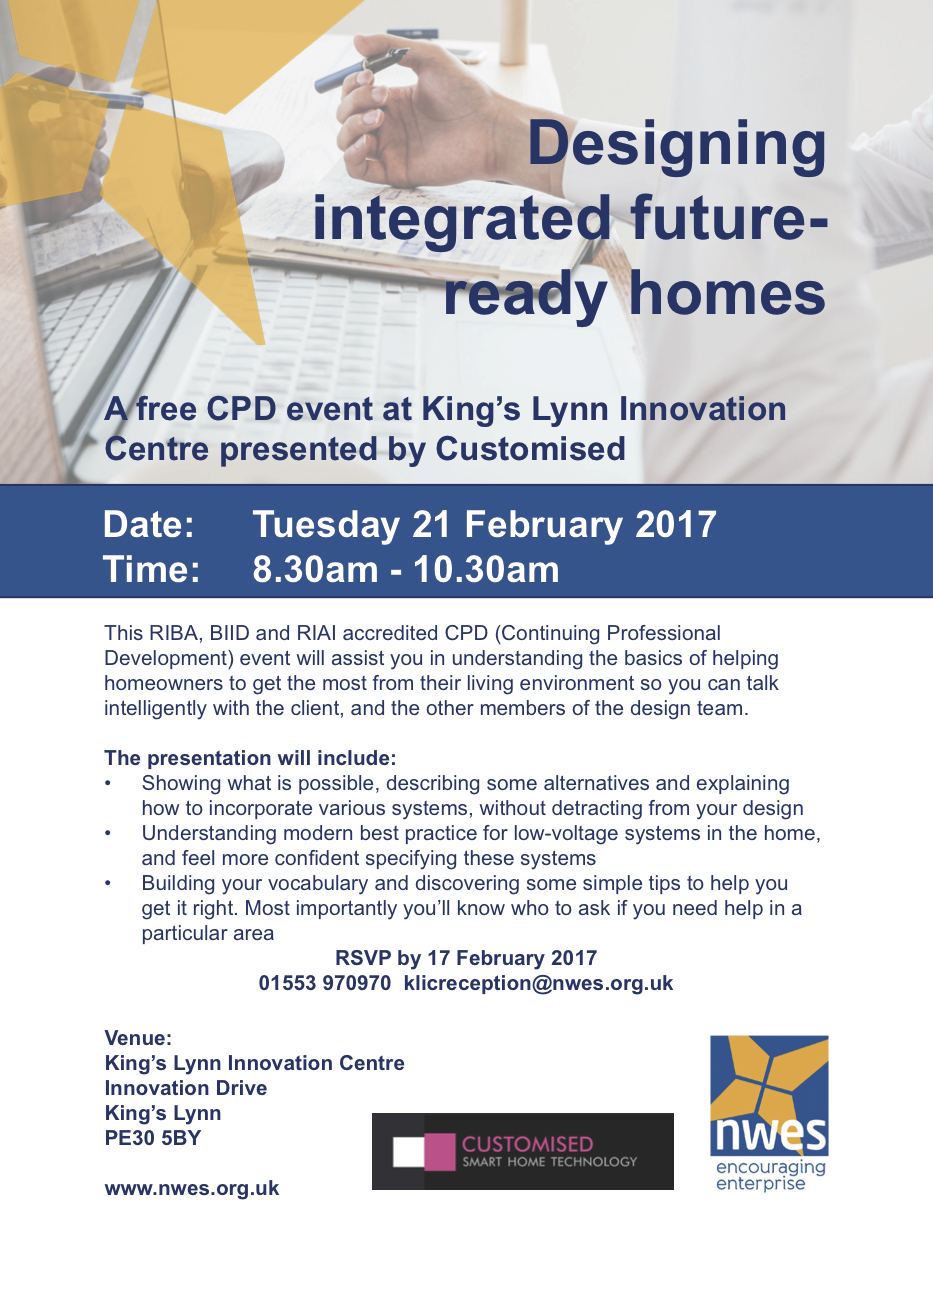 A free CPD event at King's Lynn Innovation Centre presented by Customised